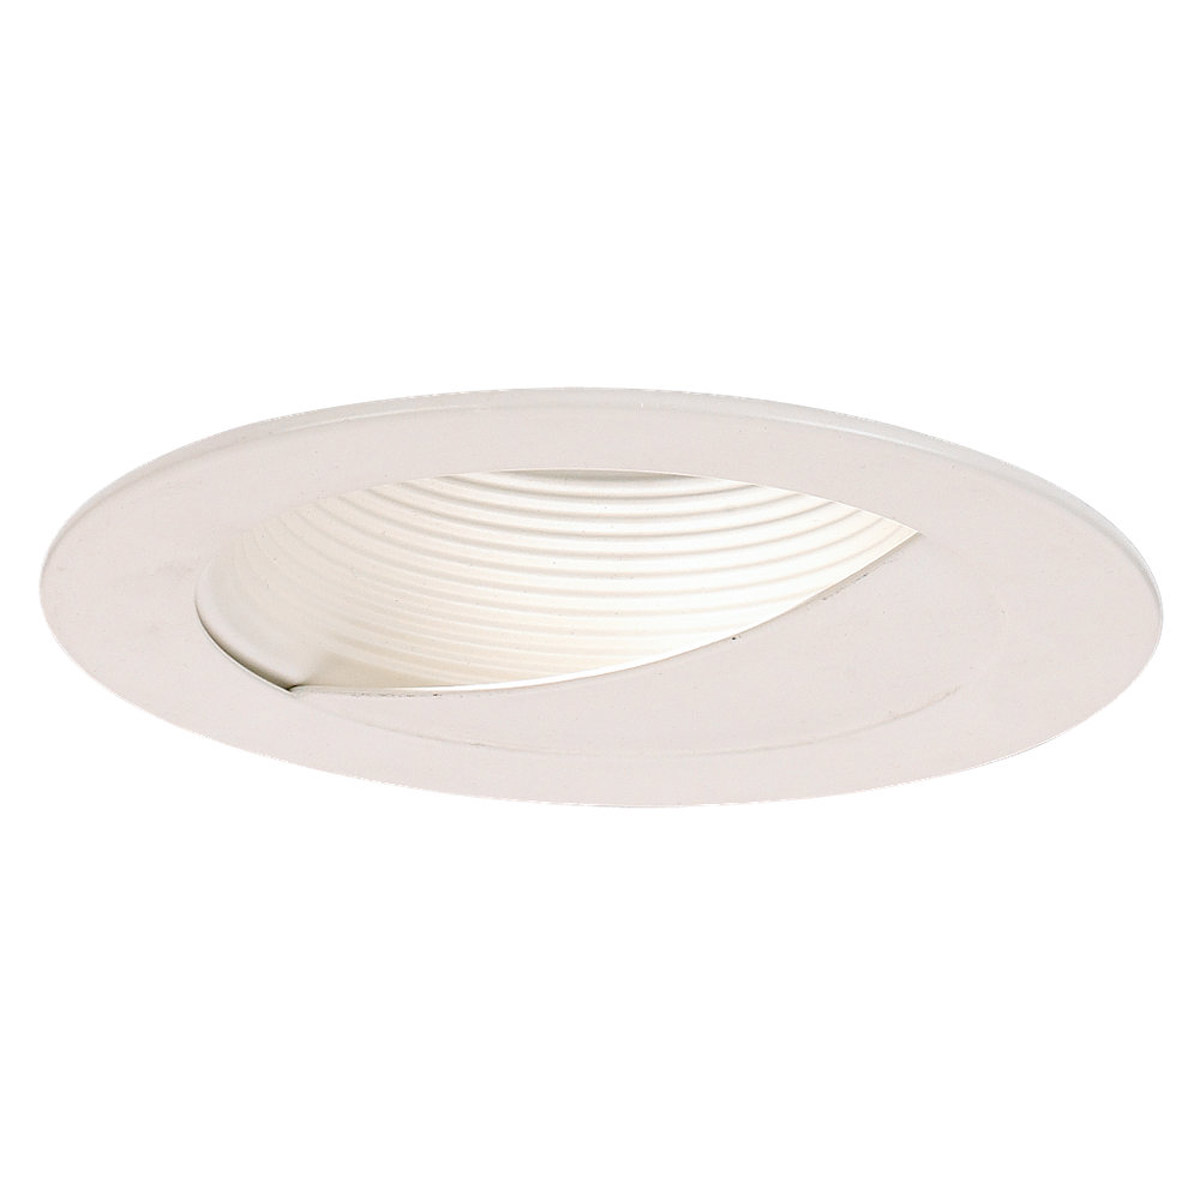 Sea Gull Lighting Signature Recessed Trim Only in White 12040AT-15 photo